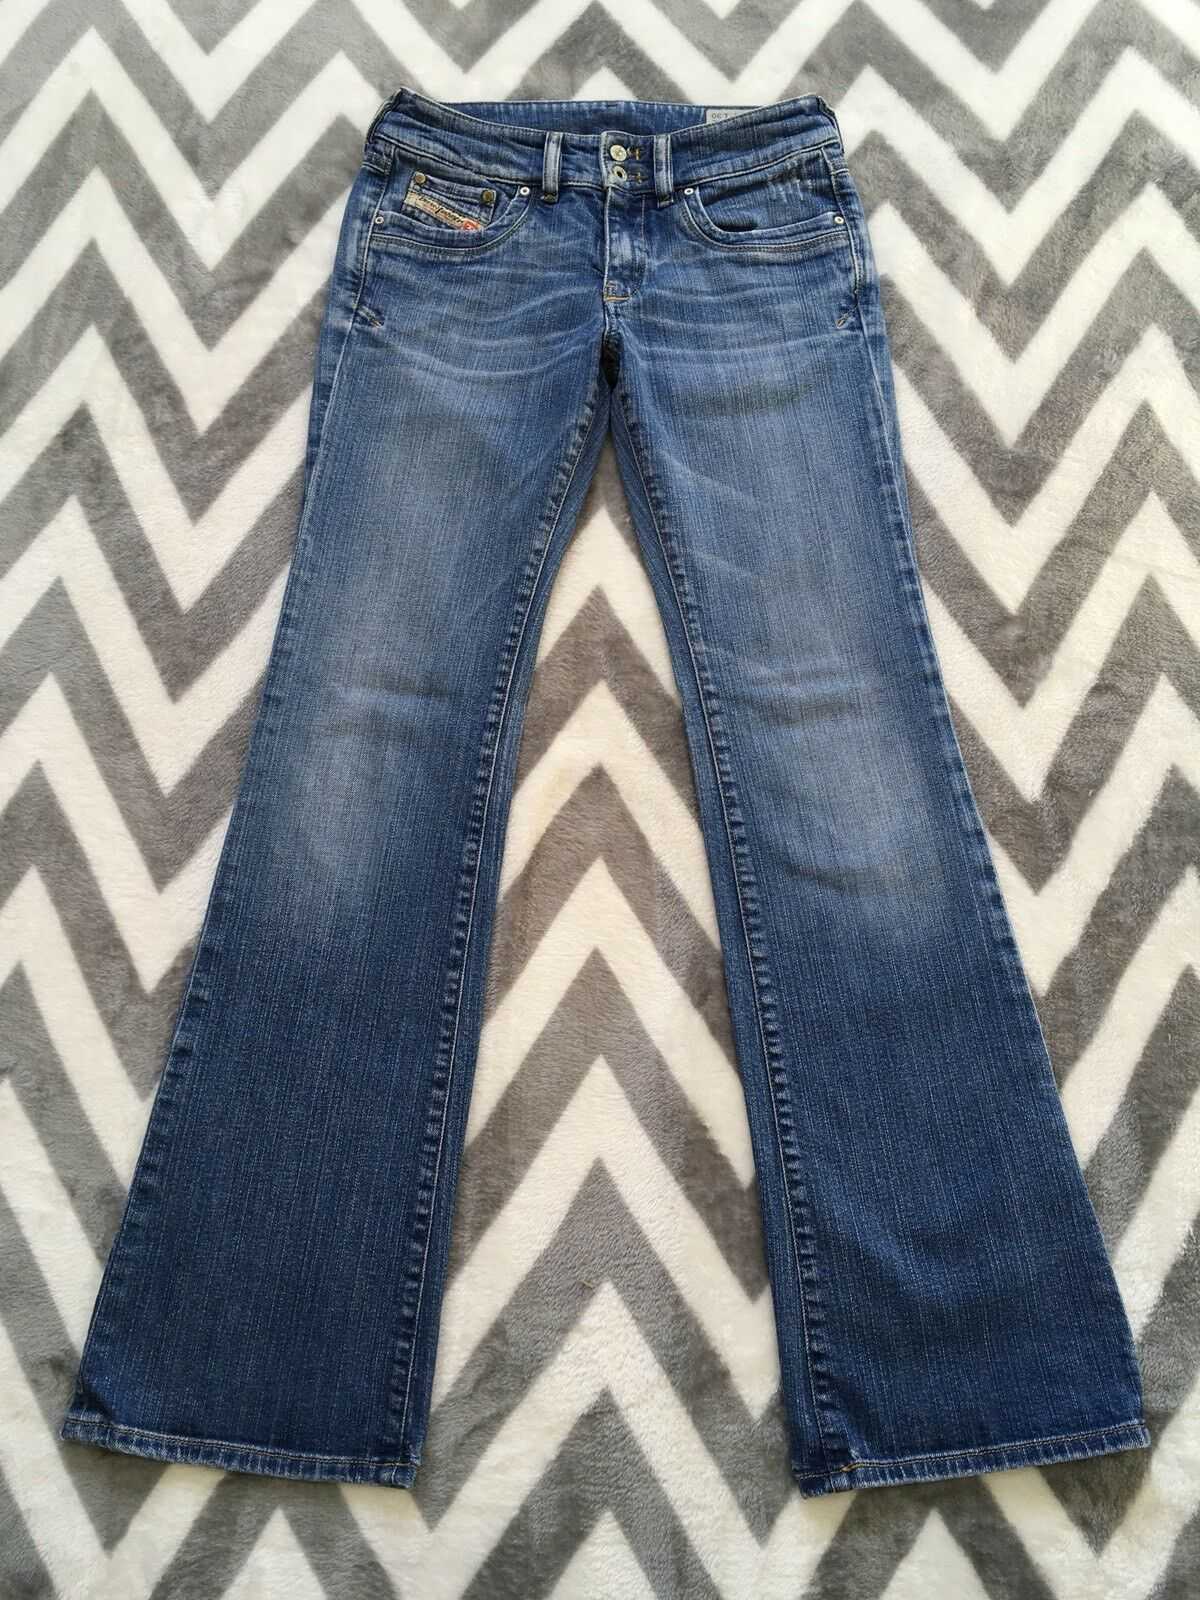 Diesel Ronhar Womens Jeans Stretch 28x30  Distressed Boot Cut  008DW